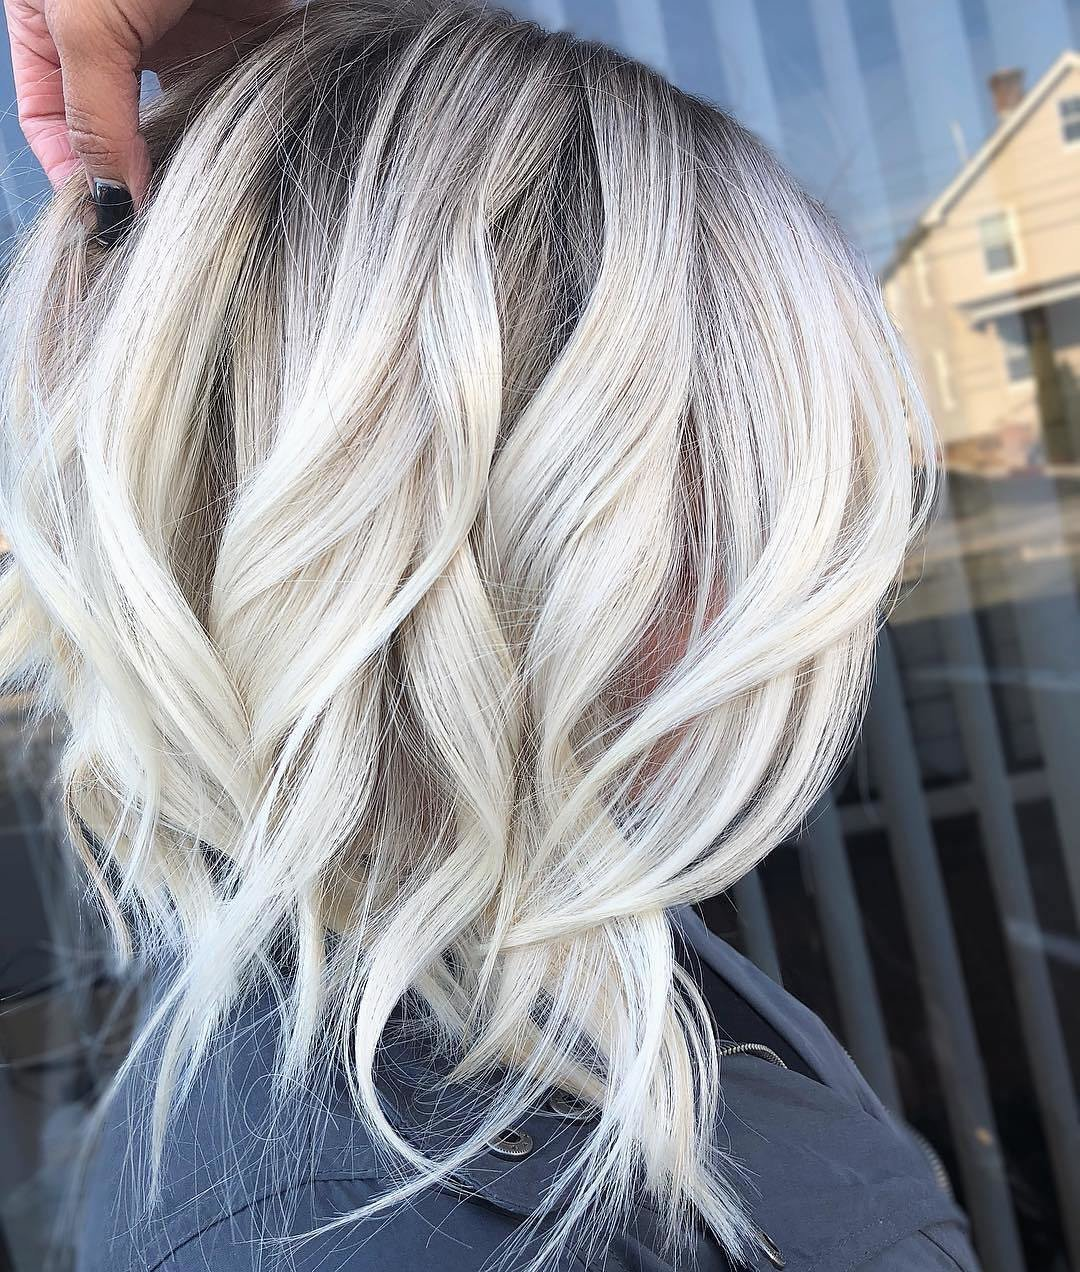 The Best 10 Trendy Ombre And Balayage Hairstyles For Shoulder Length Hair 2019 Pictures